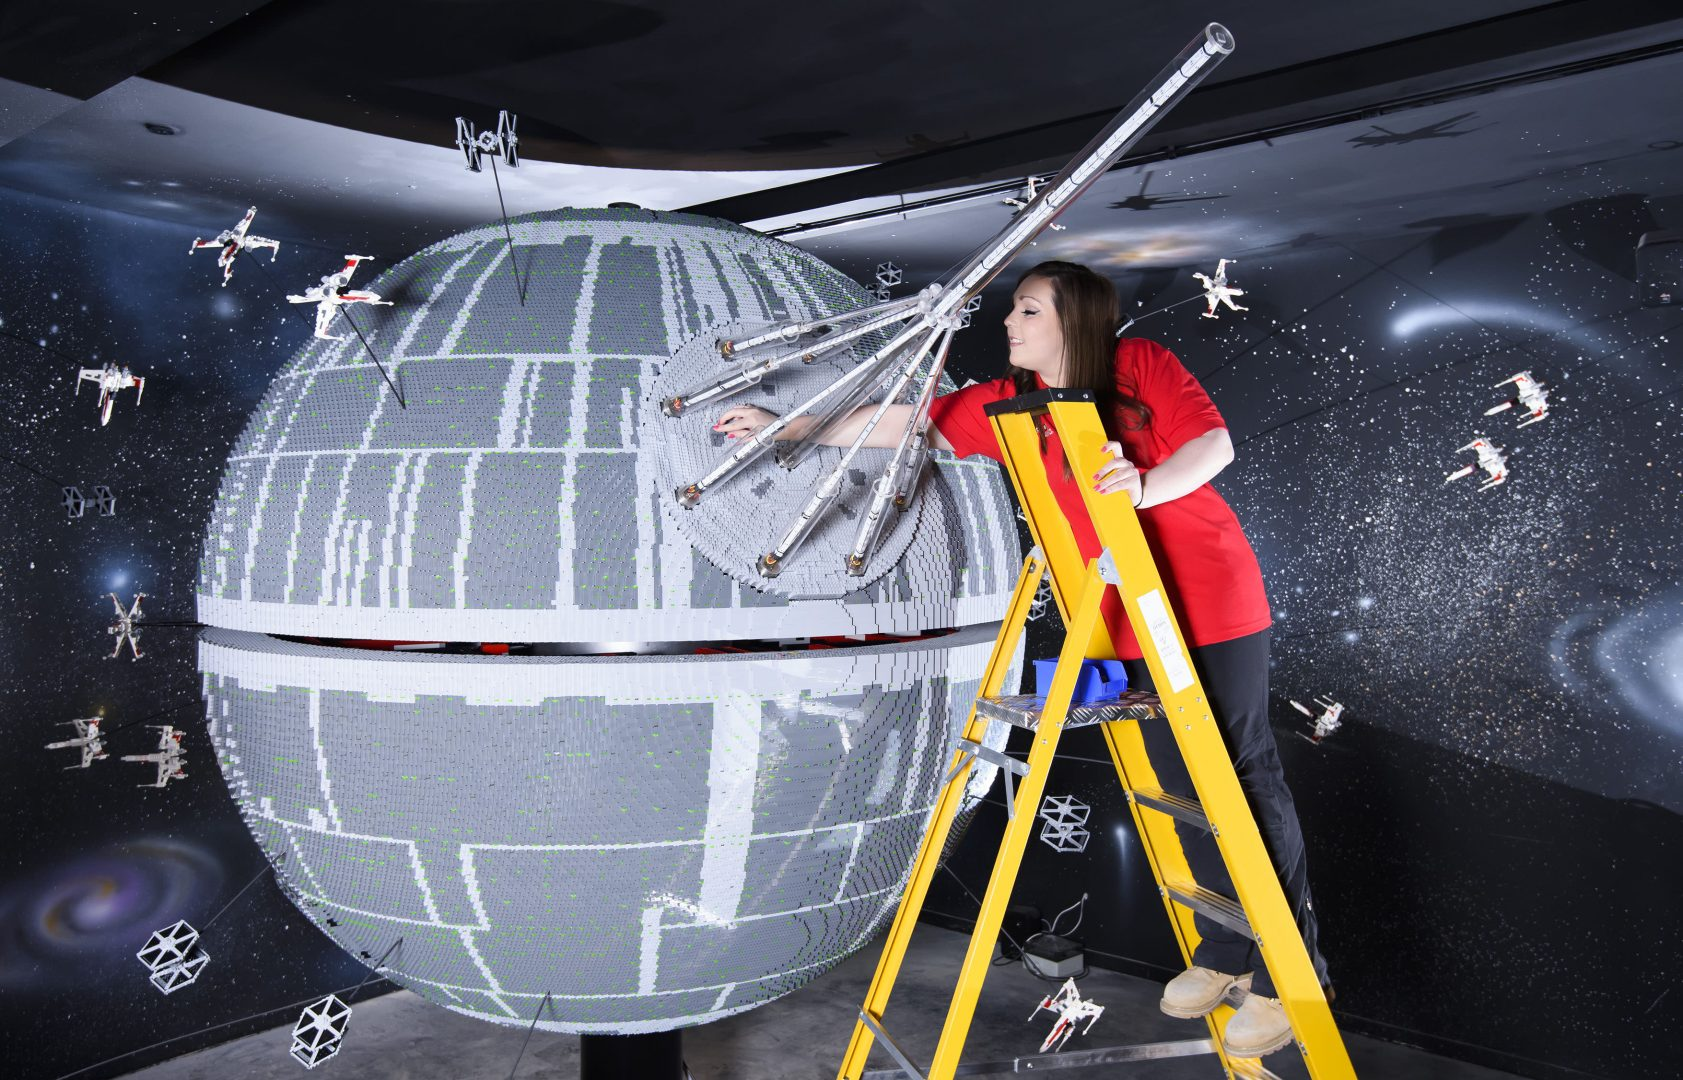 ONE OF THE WORLD'S BIGGEST EVER LEGO® STAR WARS™ MODELS INSTALLED AT THE LEGOLAND® WINDSOR RESORT.   LAST PIECES PUT IN PLACE ON 500,000 LEGO® BRICK DEATH STAR LEGOLAND® Model Maker, Phoebe Rumbol, puts the finishing touches to one of the most impressive and biggest LEGO® Star Wars™ models ever created as a 500,000 brick LEGO® Star Wars™ recreation of The Death Star is installed in a new finale to the Resort's LEGO® Star Wars™ Miniland Model Display. The operation took three days as the massive new 2.4 metre wide, 3 metre high creation was carefully hoisted into position and the final bricks  were put in place. The hefty 860kg perfectly spherical model took 15 Model Makers three months to build and  guests can trigger special effects and bring the scene to life when it opens at the Resort on 11 March.  TM & © Lucasfilm Ltd. All rights reserved